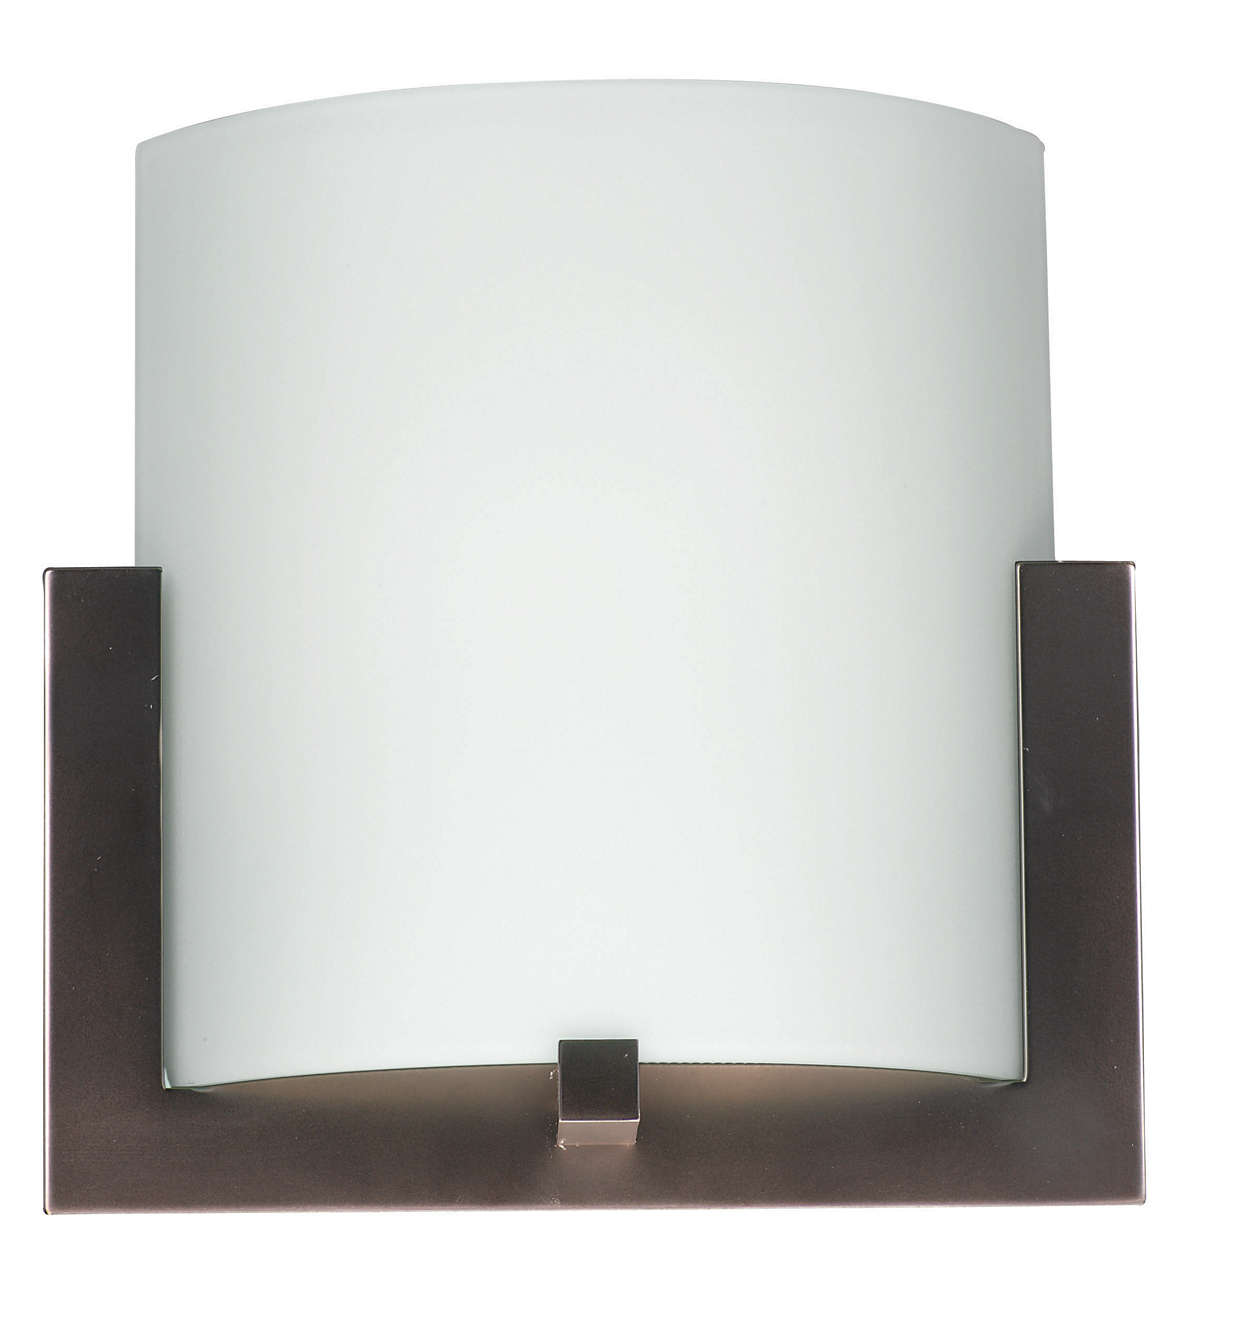 Bow LED wall sconce in Merlot Bronze finish